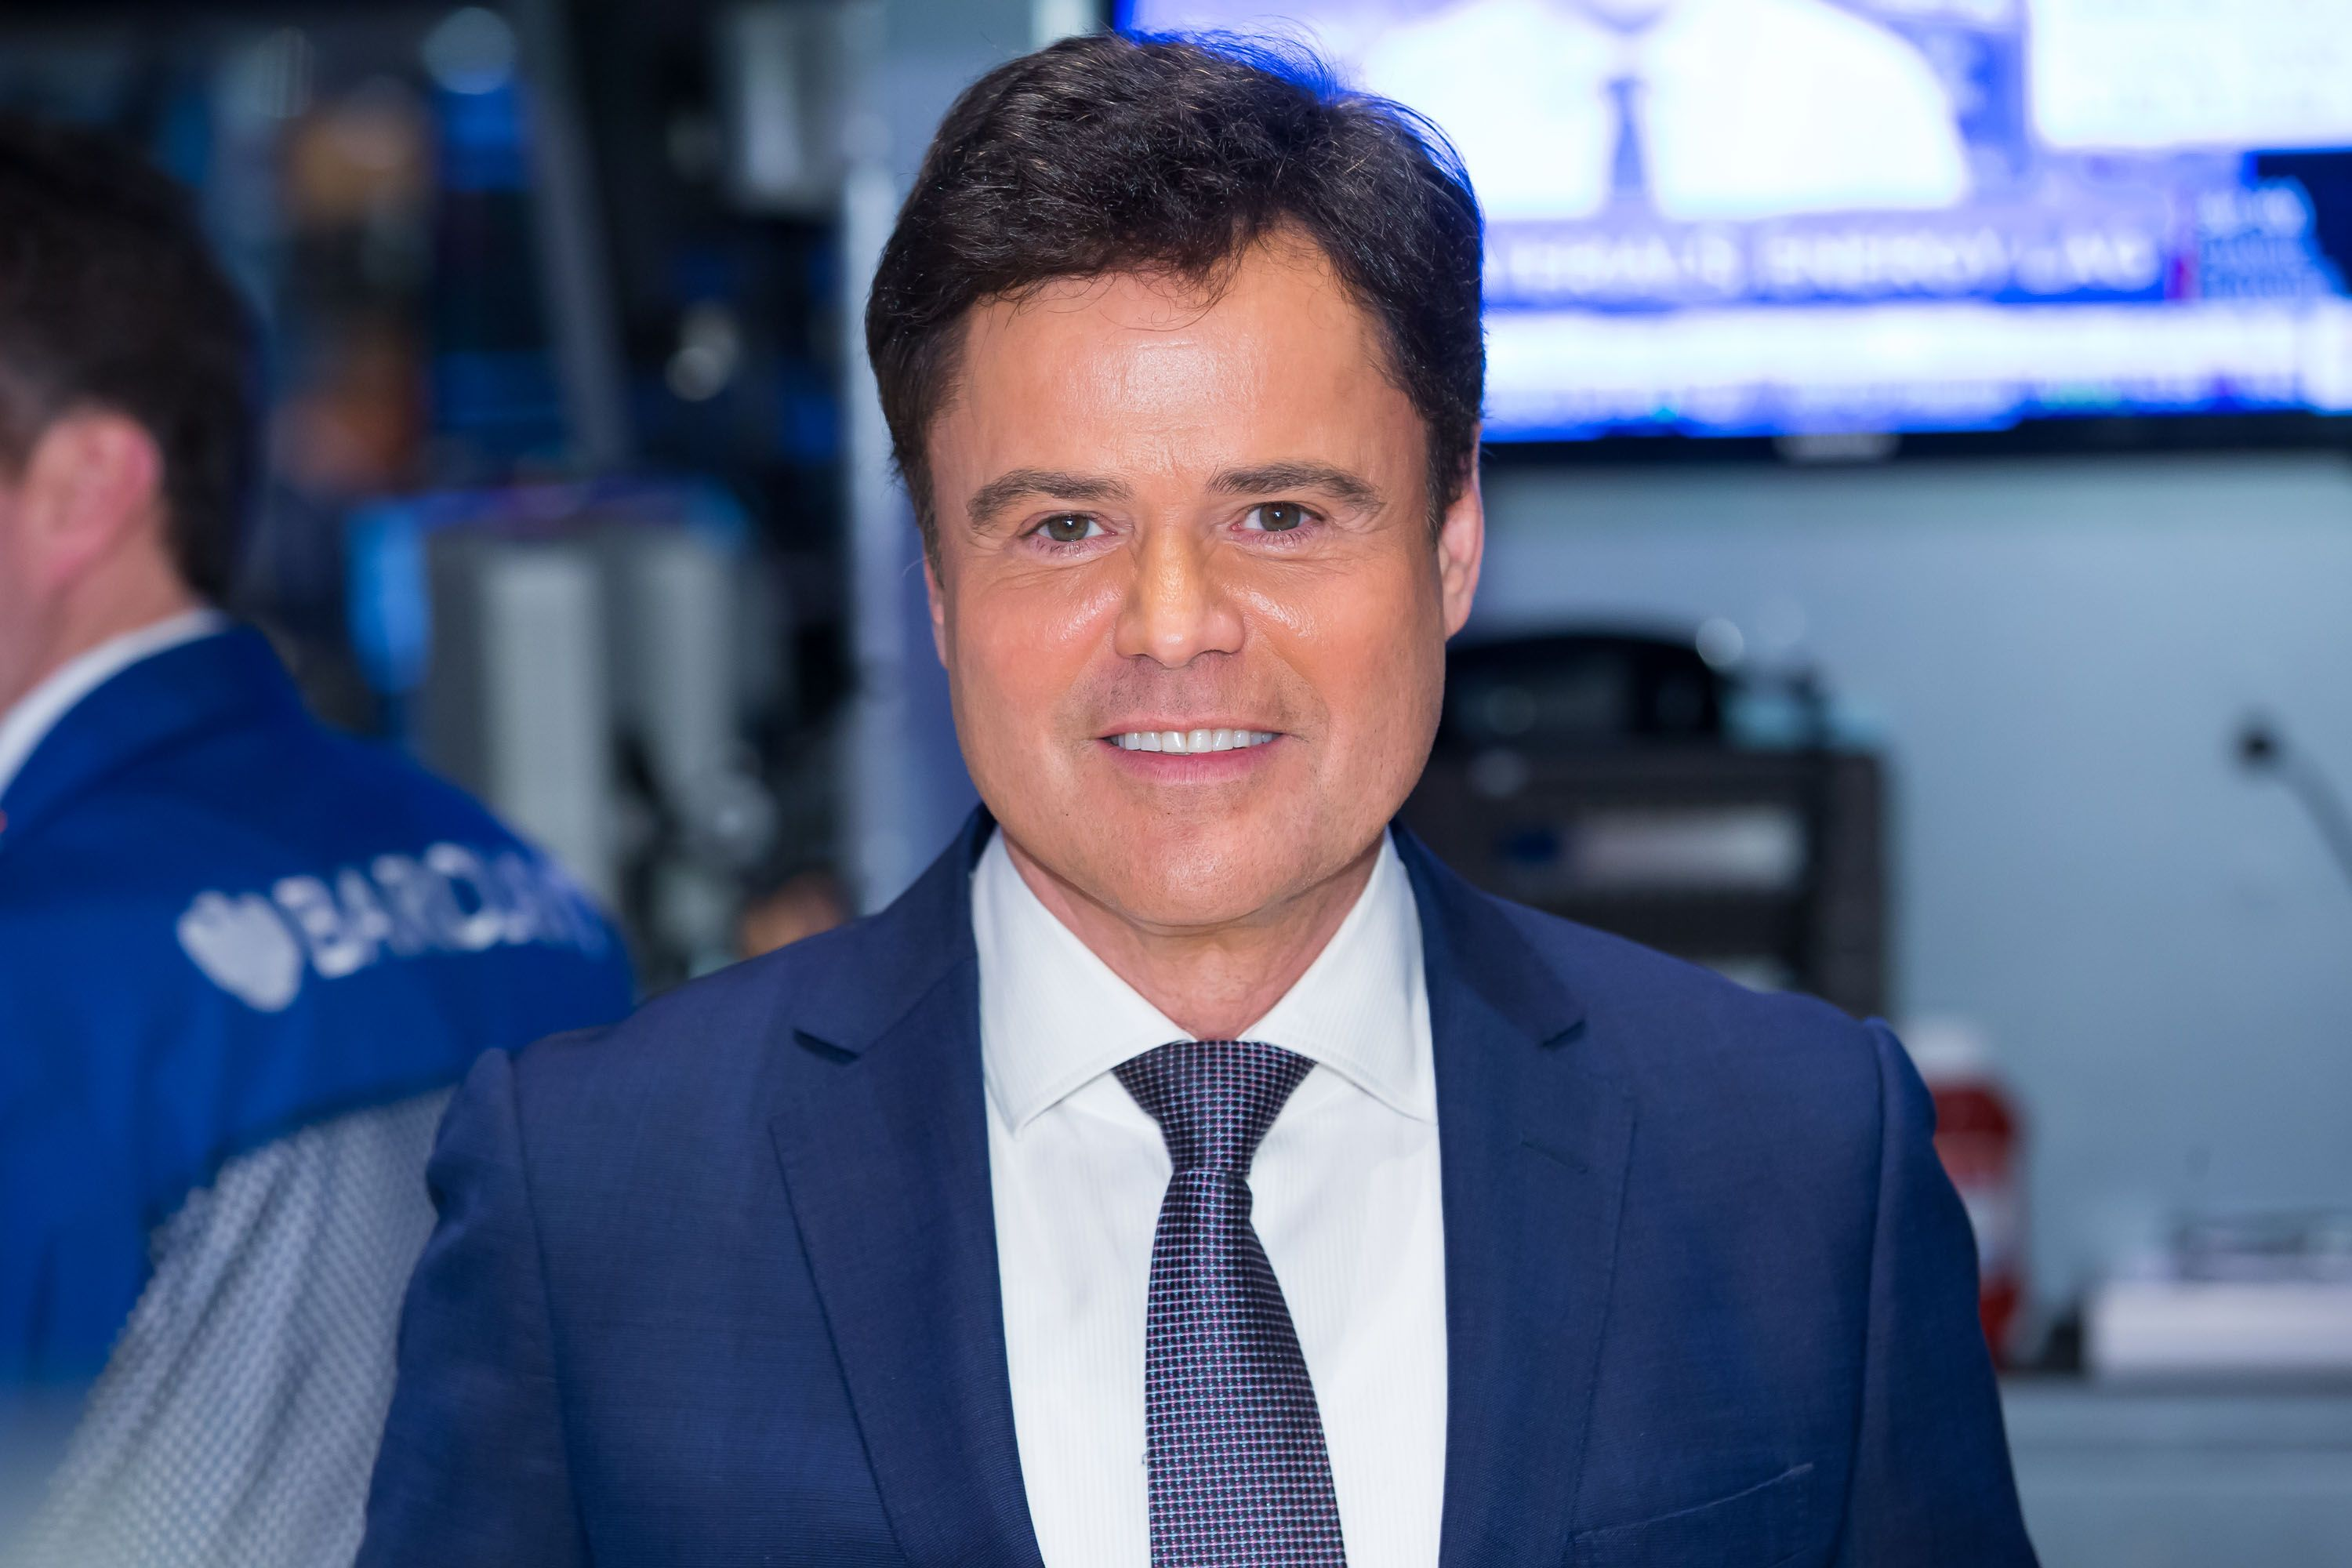 Actor Donny Osmond rings the Closing Bell at New York Stock Exchange on January 13, 2015 | Photo: Getty Images